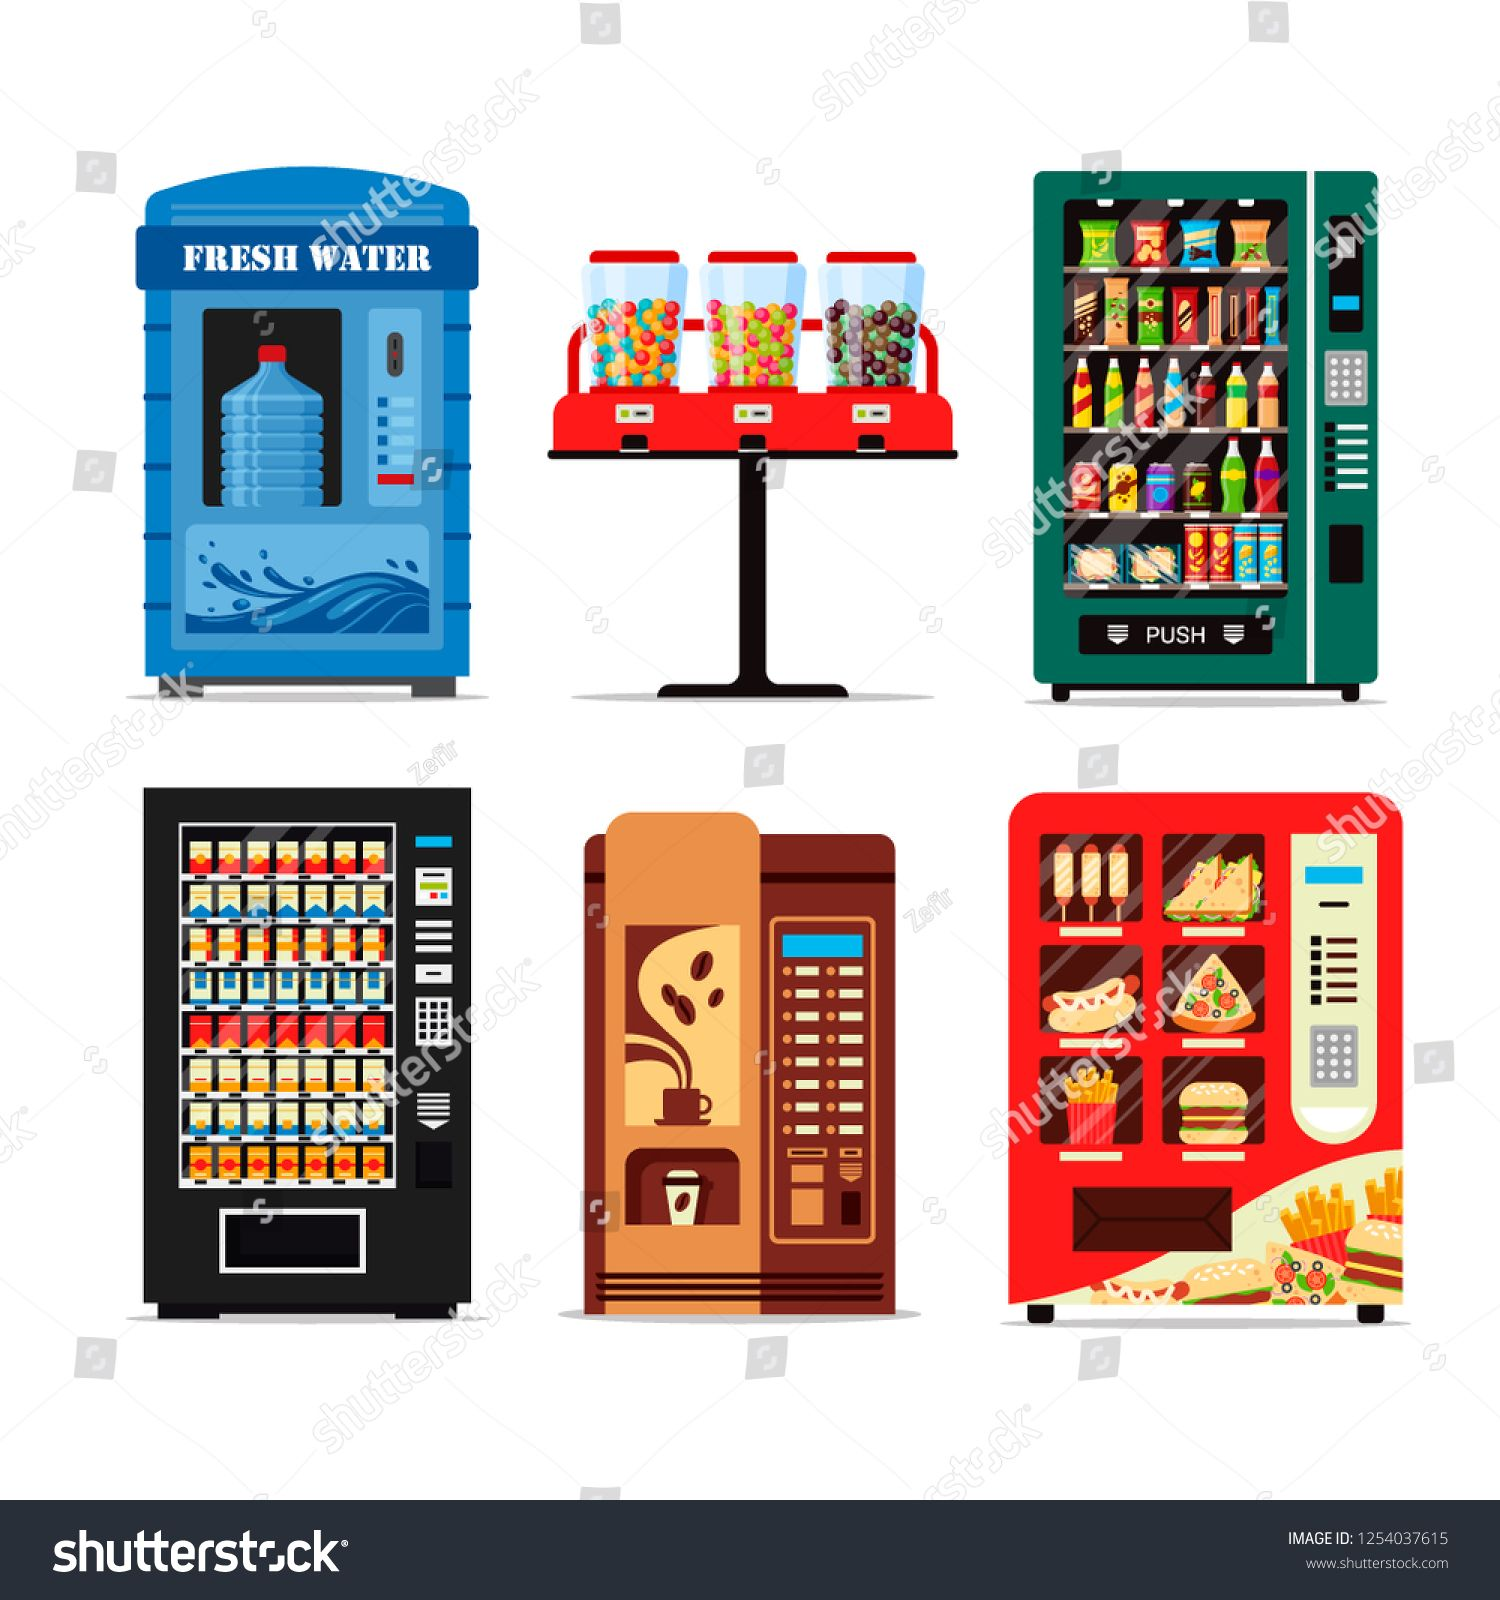 Set Vending Machines Full Of Products Dispensers Collection With